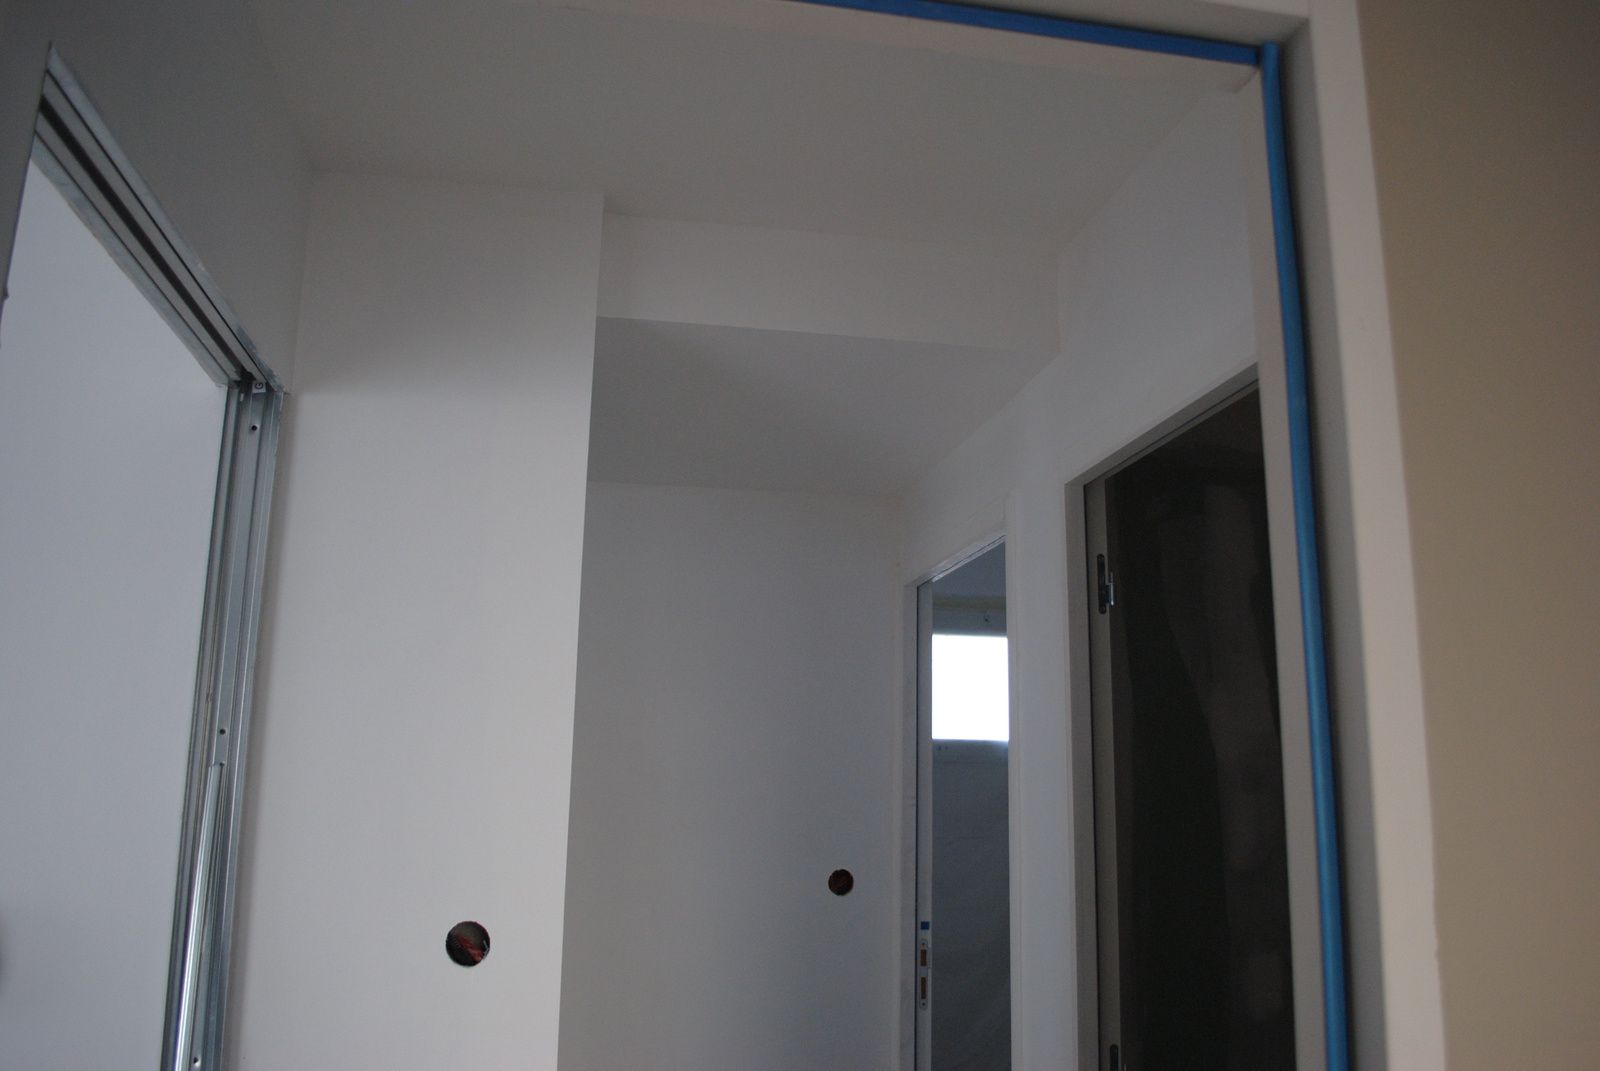 Apr s s chage monprojet for Plafond mat ou satin